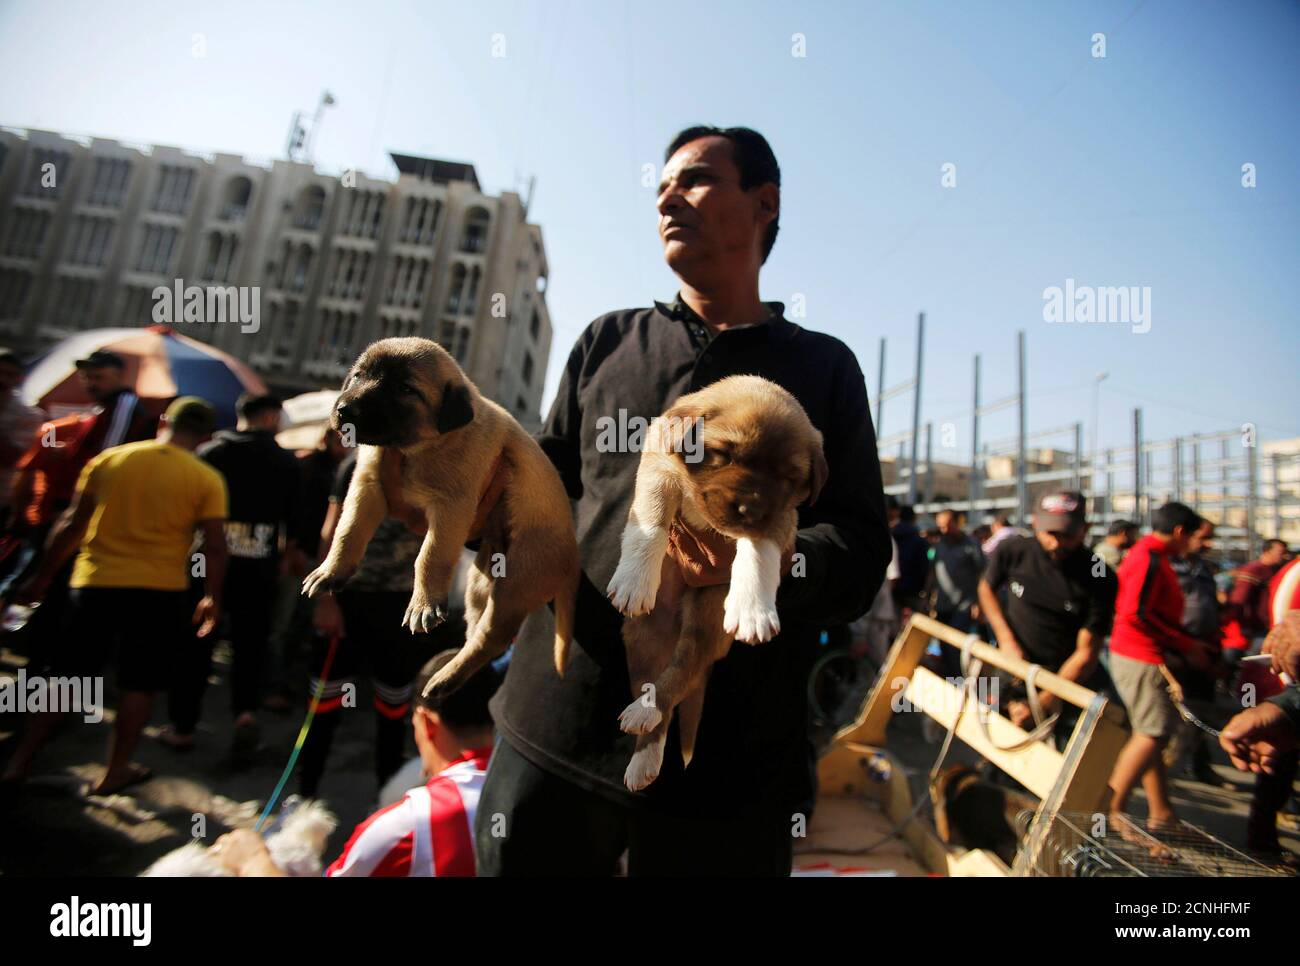 A man sells dogs at the Ghazal pet market in Baghdad, Iraq November 17, 2017. REUTERS/Khalid Al-Mousily Stock Photo